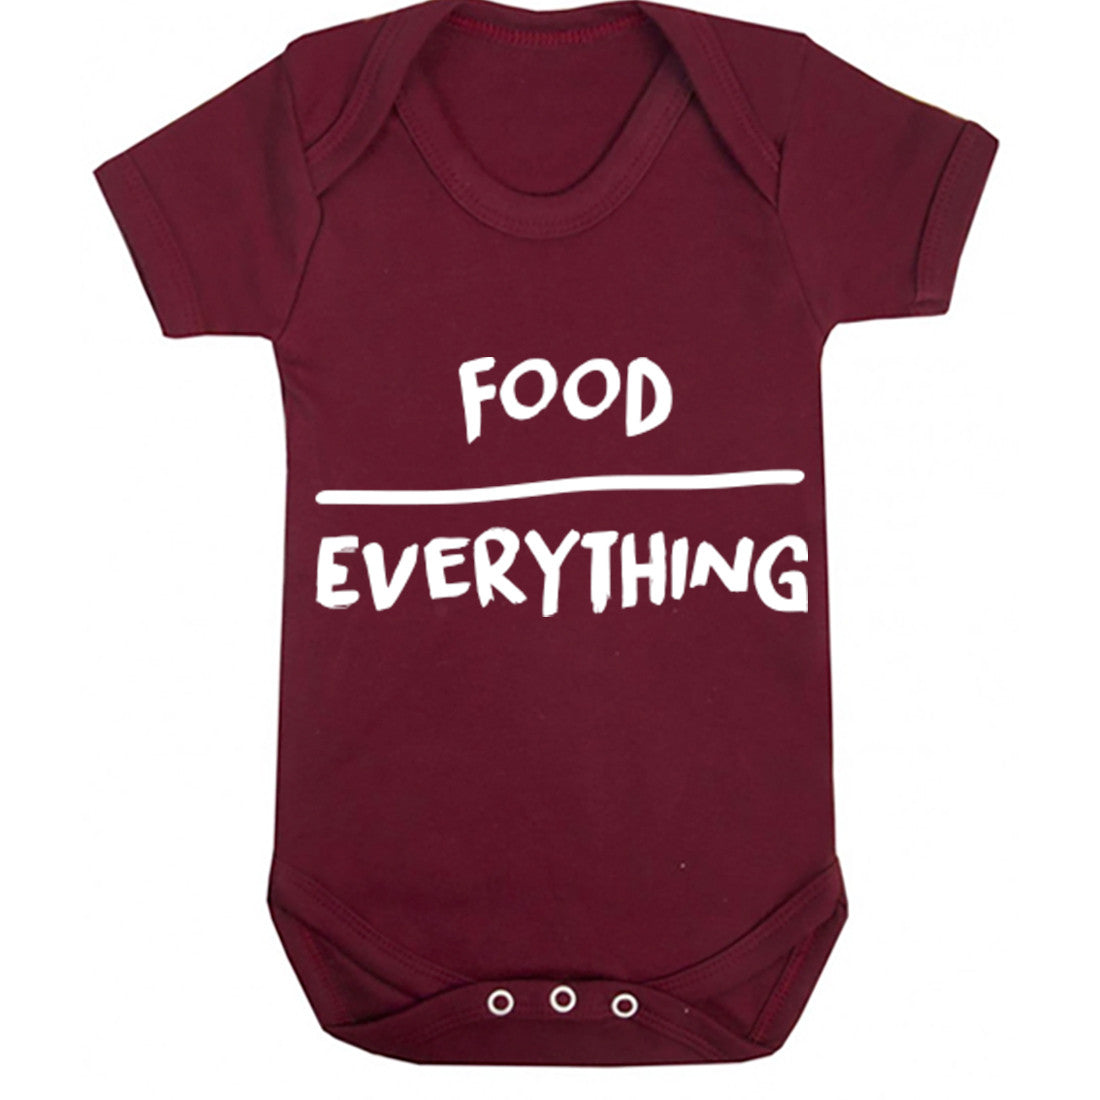 Food Over Everything Baby Vest K0126